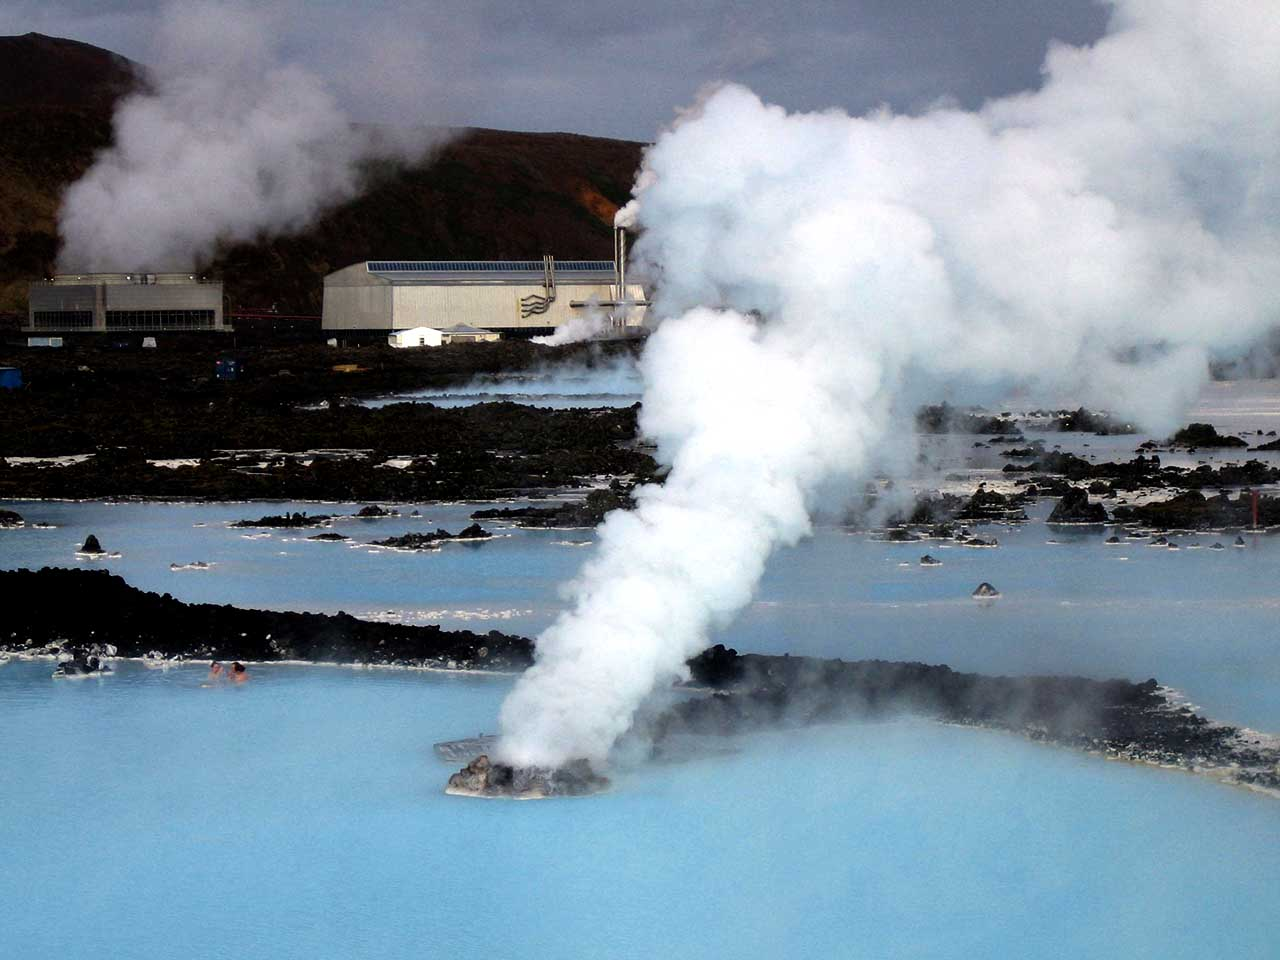 Iceland uses geo-thermal energy